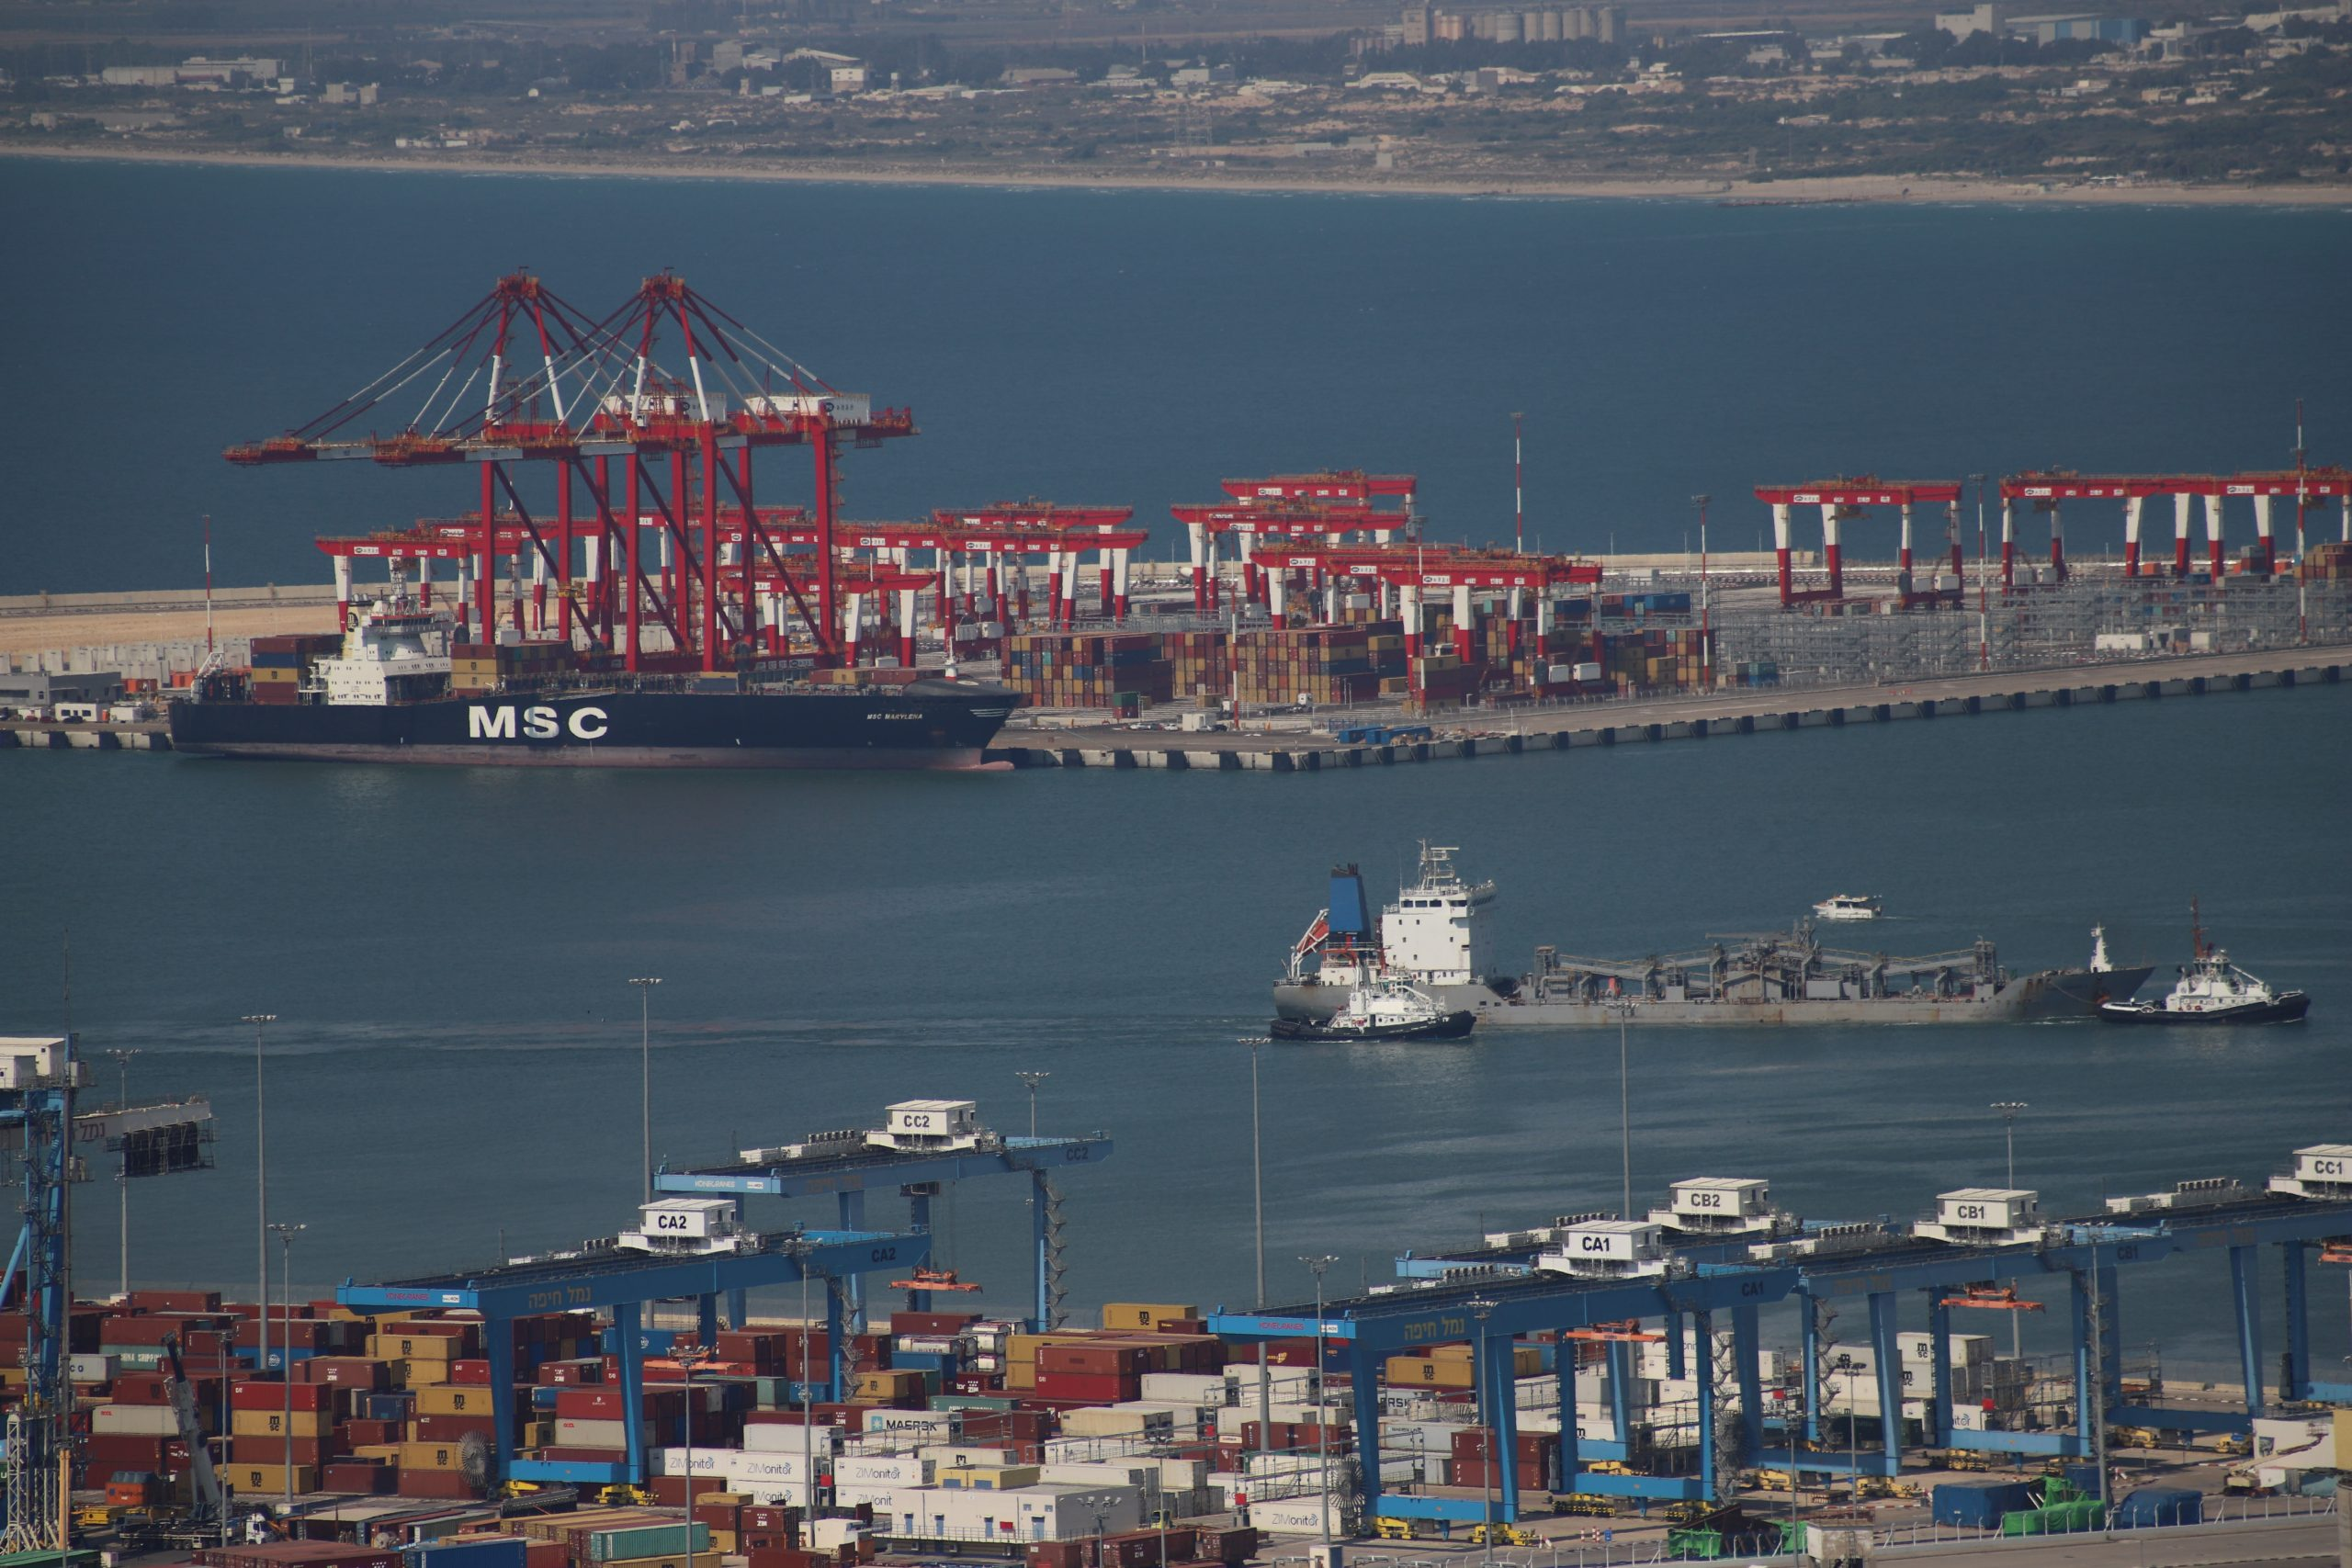 MSC Marylena is the first ship loaded in a new Bay Port in Haifa